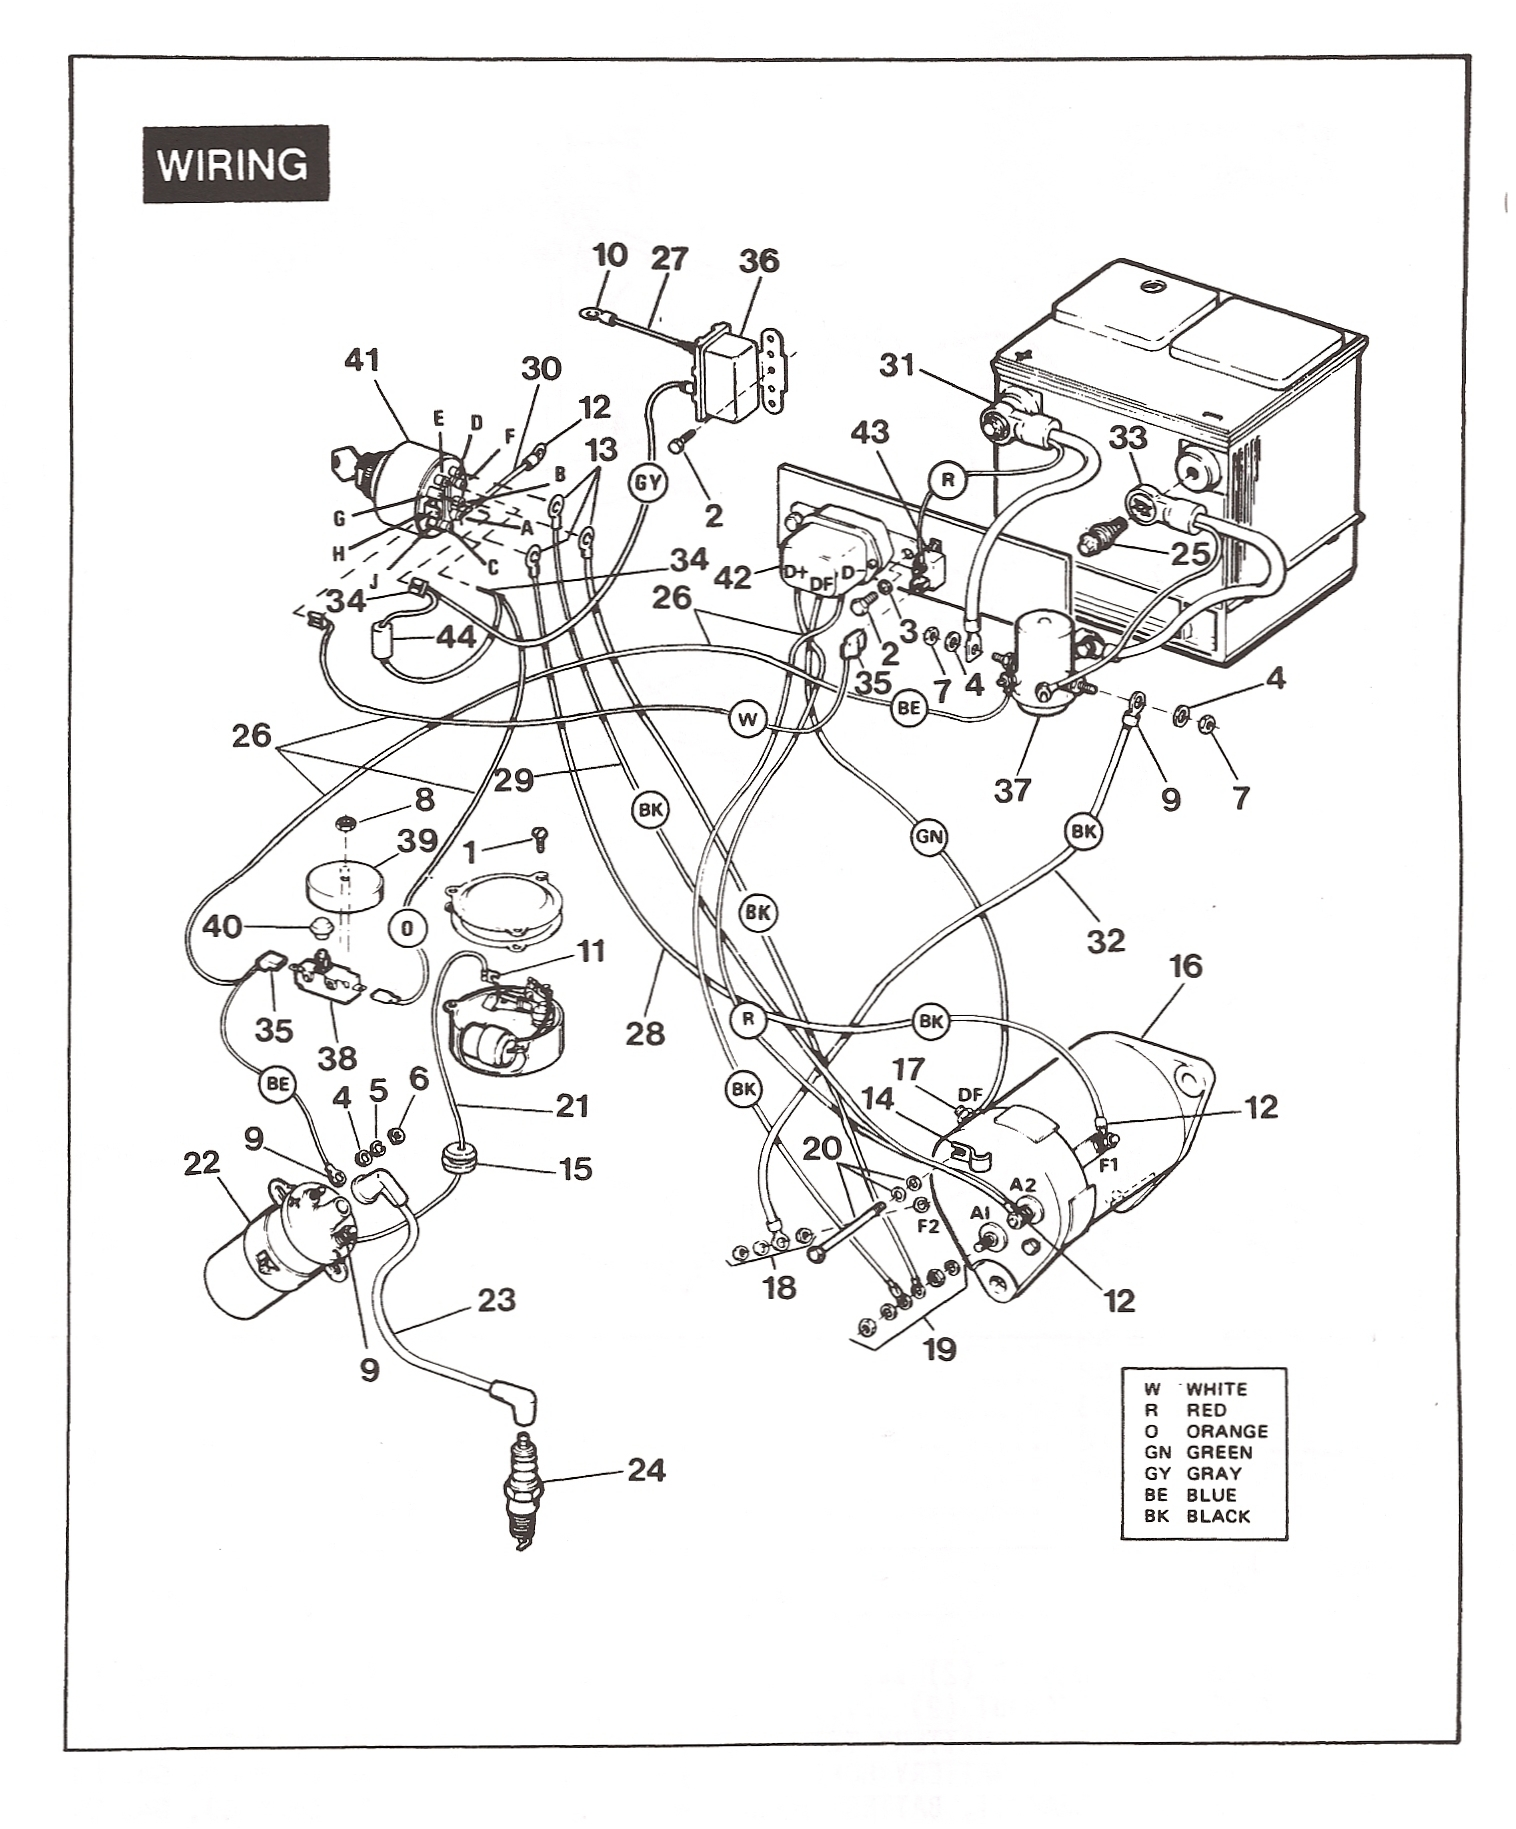 462128 1979 Kz1000 C2 No Spark Dyna Iii Ignition System besides 1998 Gmc 1500 Door Wiring Diagrams together with Ford F800 Wiring Schematic likewise Dodge D100 600 And W100 500 Turn Signal further 3bngg Need Diagram Fuse Relay Hood. on harley ignition switch wiring diagram